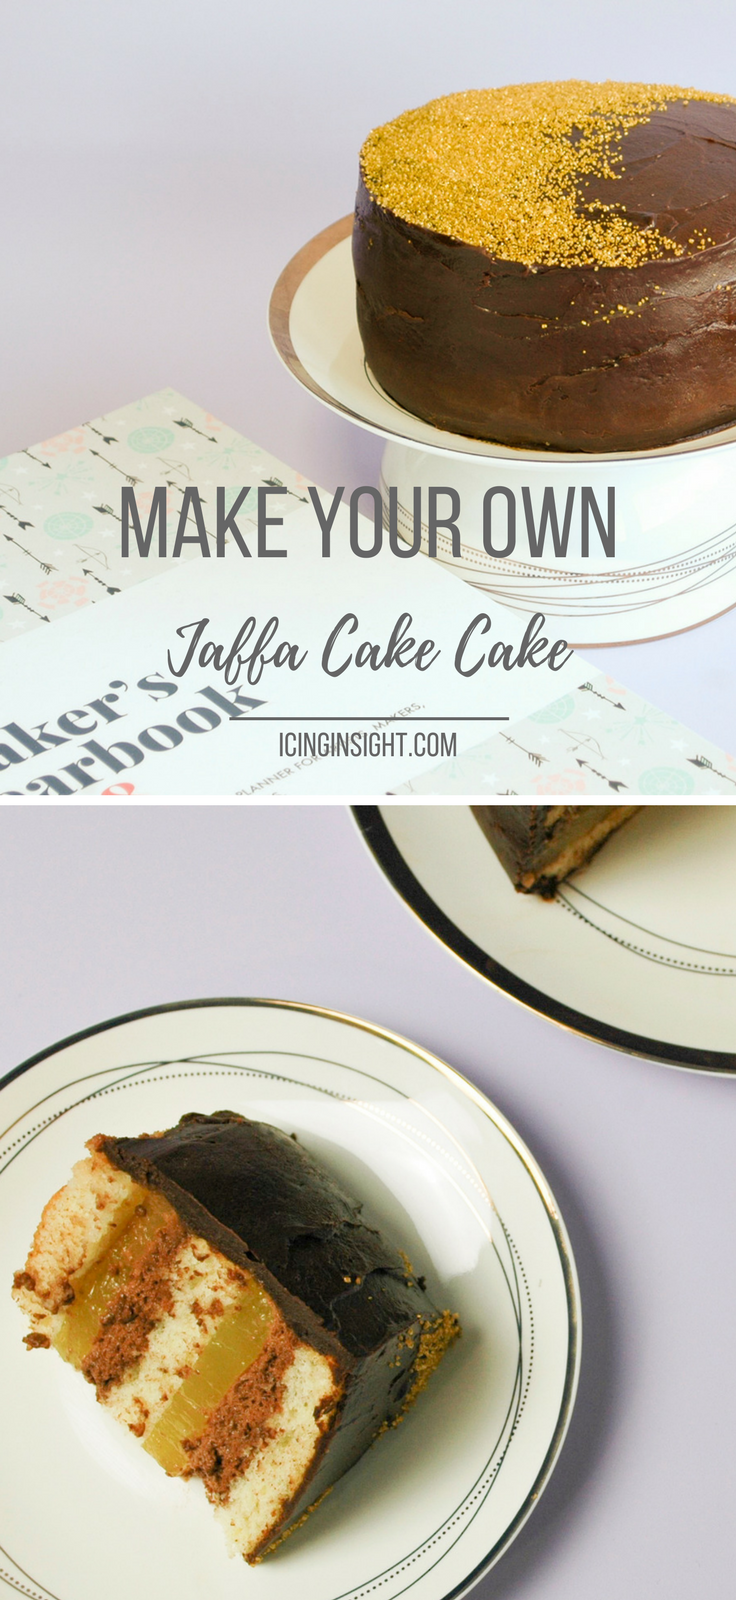 Jaffa Cake Cake Recipe - step by step instructions to make this ...